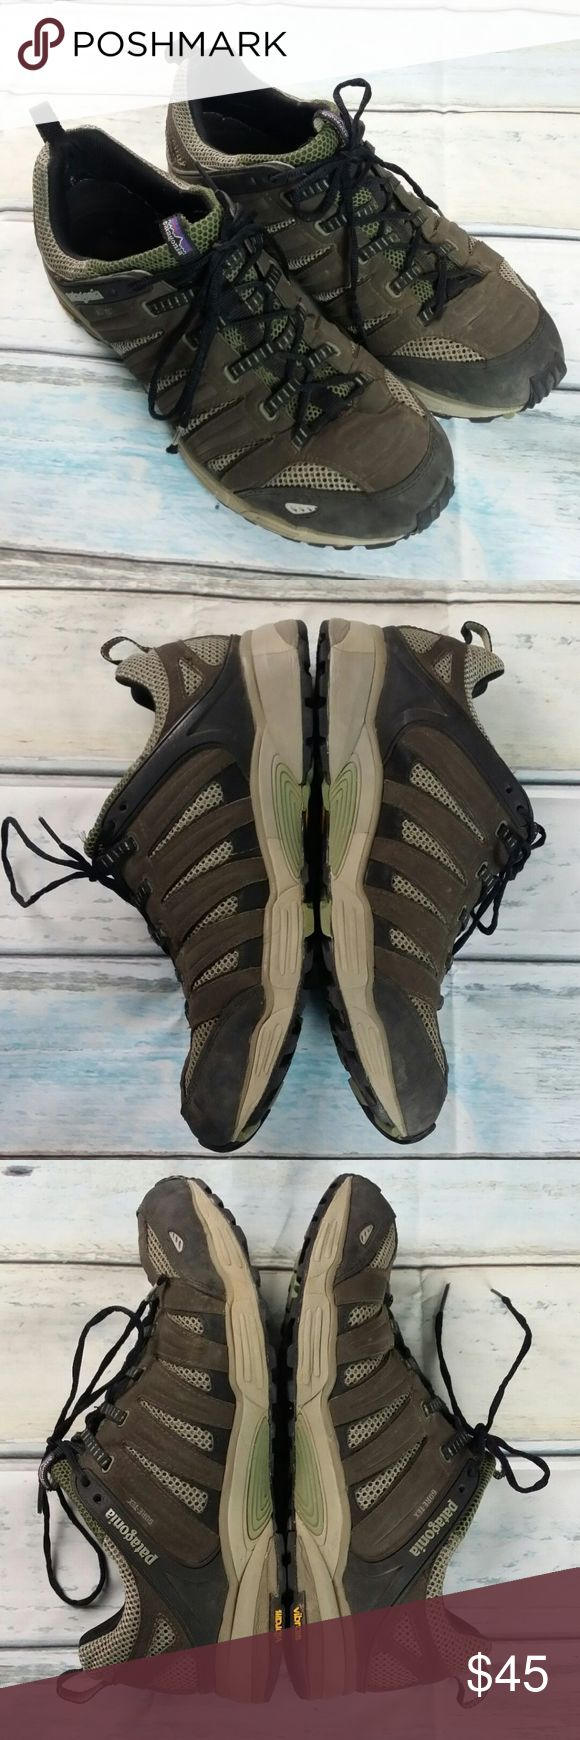 Men's Patagonia Hiking shoes Gore-Tex sz 13 Vibram Men's Patagonia Hiking shoes Release Gore-Tex size 13 Vibram espresso sneakers Goretex Brown Gray Lace up   c6 Patagonia Shoes Sneakers